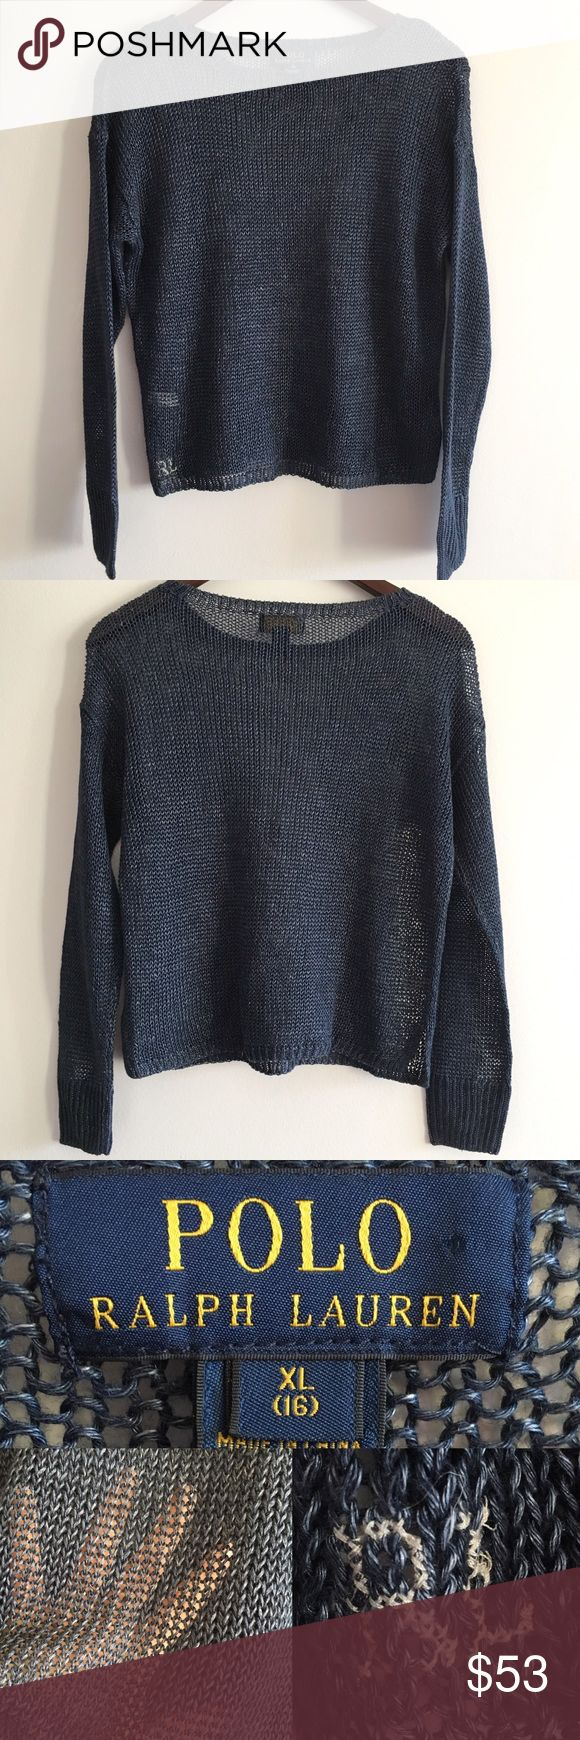 """POLO Ralph Lauren Linen Sweater This sweater pairs great with denim for the perfect casual look 💙 It is very loosely knit, which means it's pretty see-through (3rd pic)--so I recommend layering it over a white button-down, cami, or bodysuit 😎  Stats (laying flat): Front length: 18.5"""" Back length: 19.5"""" Width (armpit to armpit): 19"""" Sleeve: 20"""" from shoulder seam   100% linen  Pre-owned, with minimal signs of wear   No flaws   Hand wash cold   No trades Polo by Ralph Lauren Sweaters Crew…"""